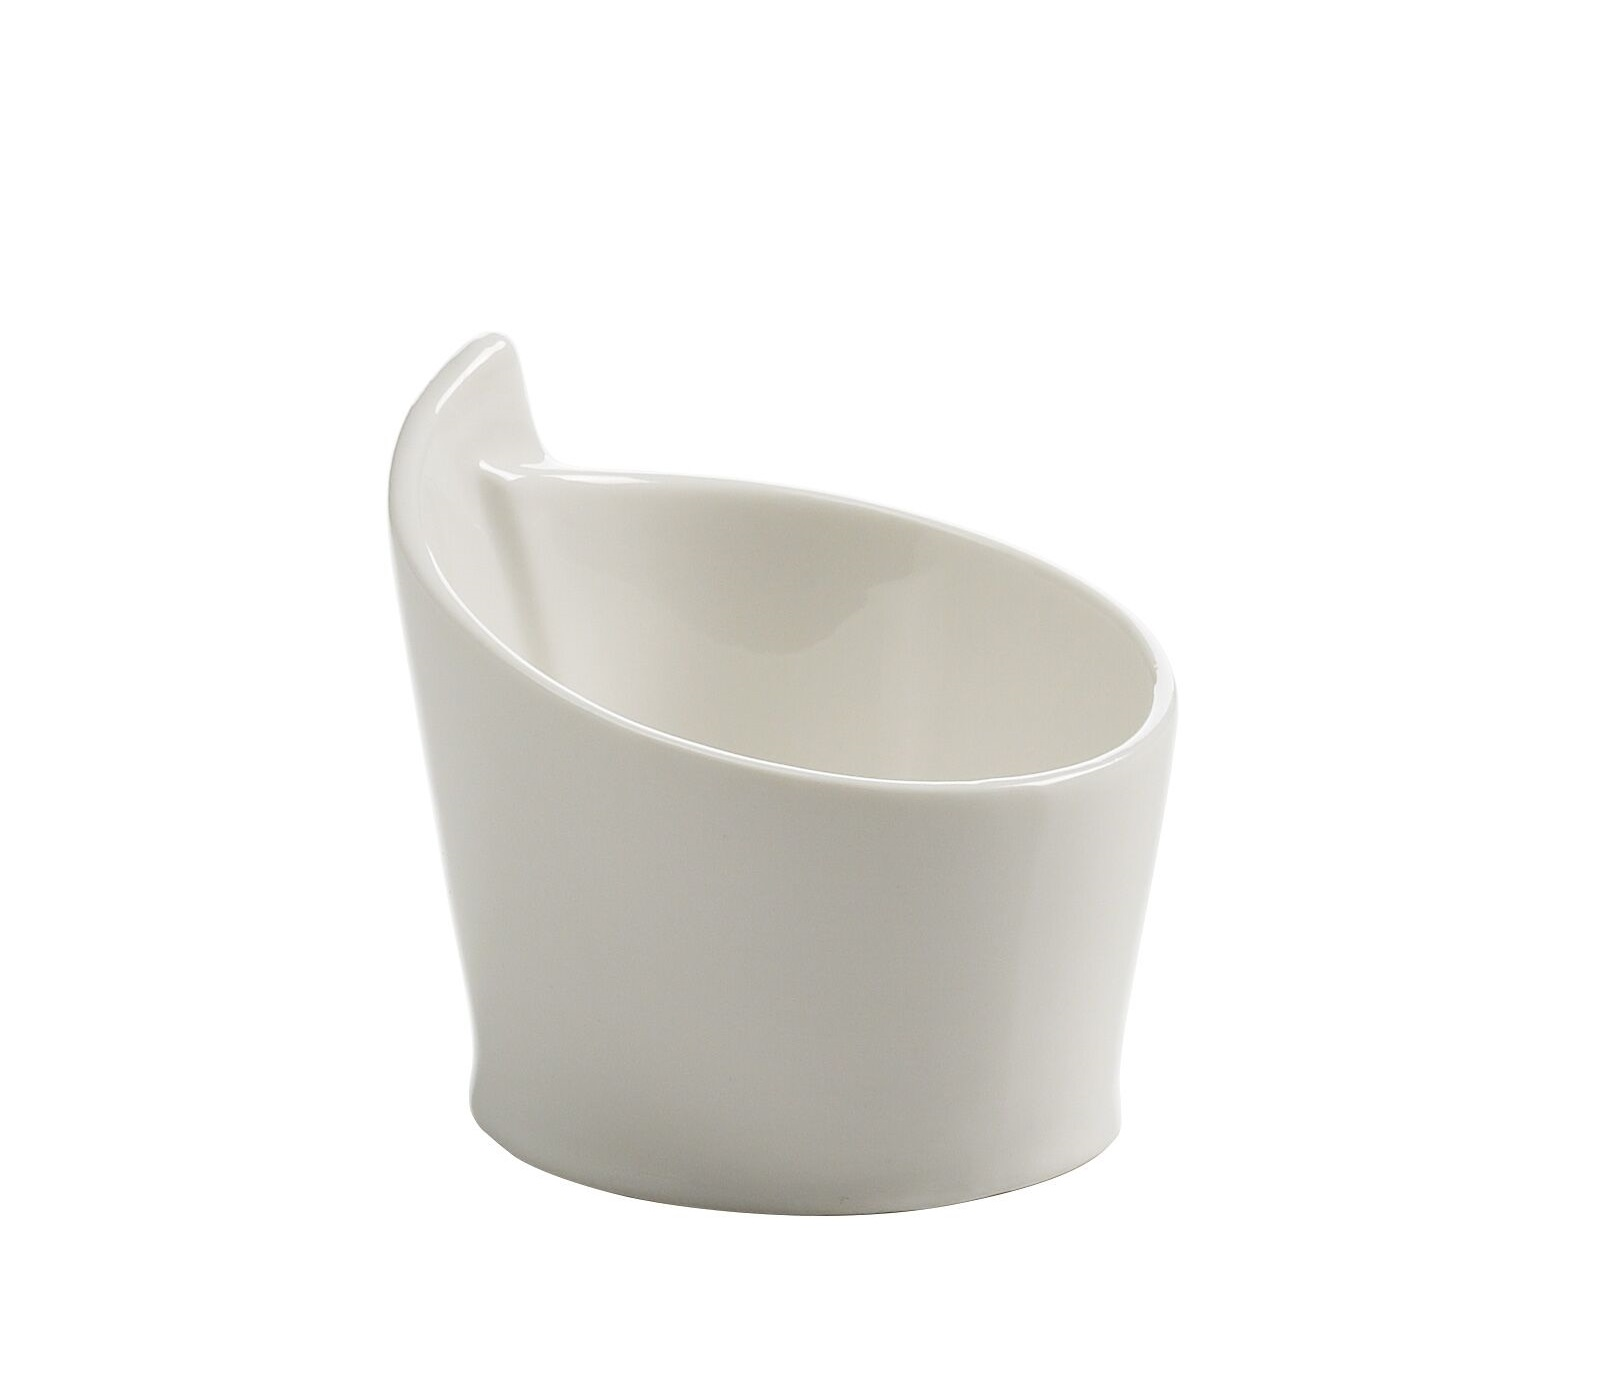 Maxwell & Williams Sauskom Verdeeld White Basics Round 5 x 5 cm